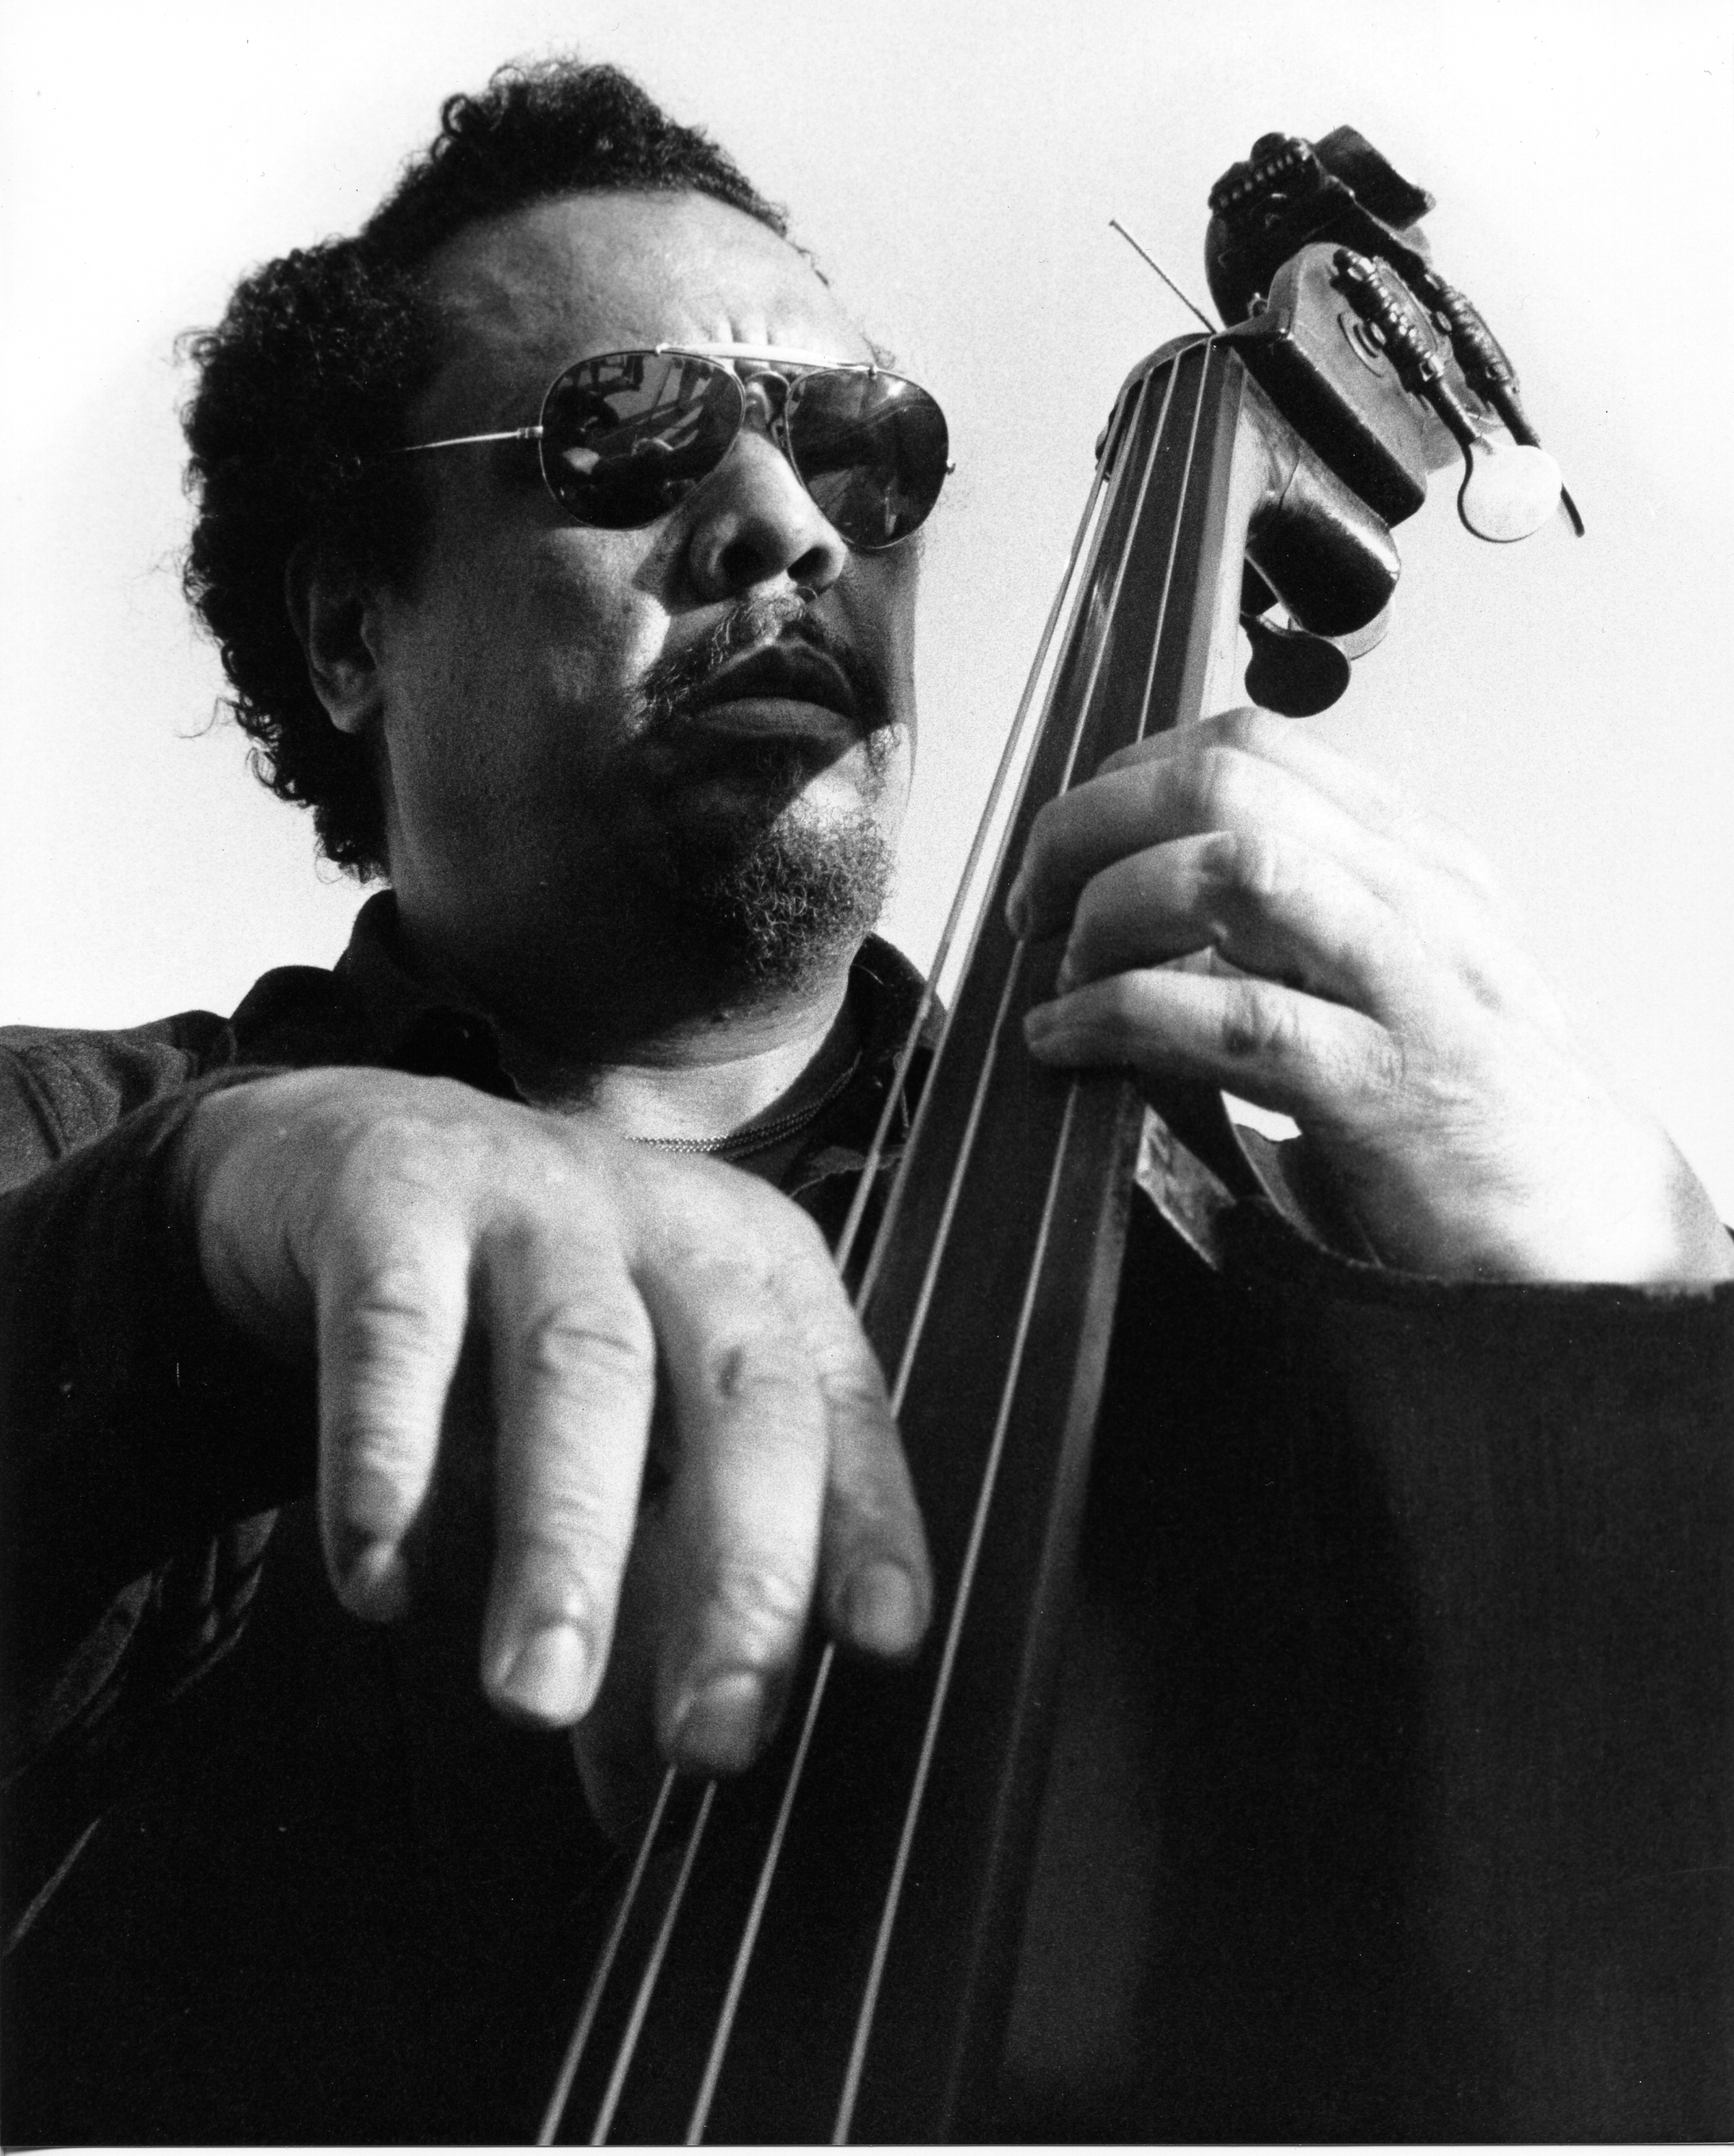 Neal Caine Plays Charles Mingus